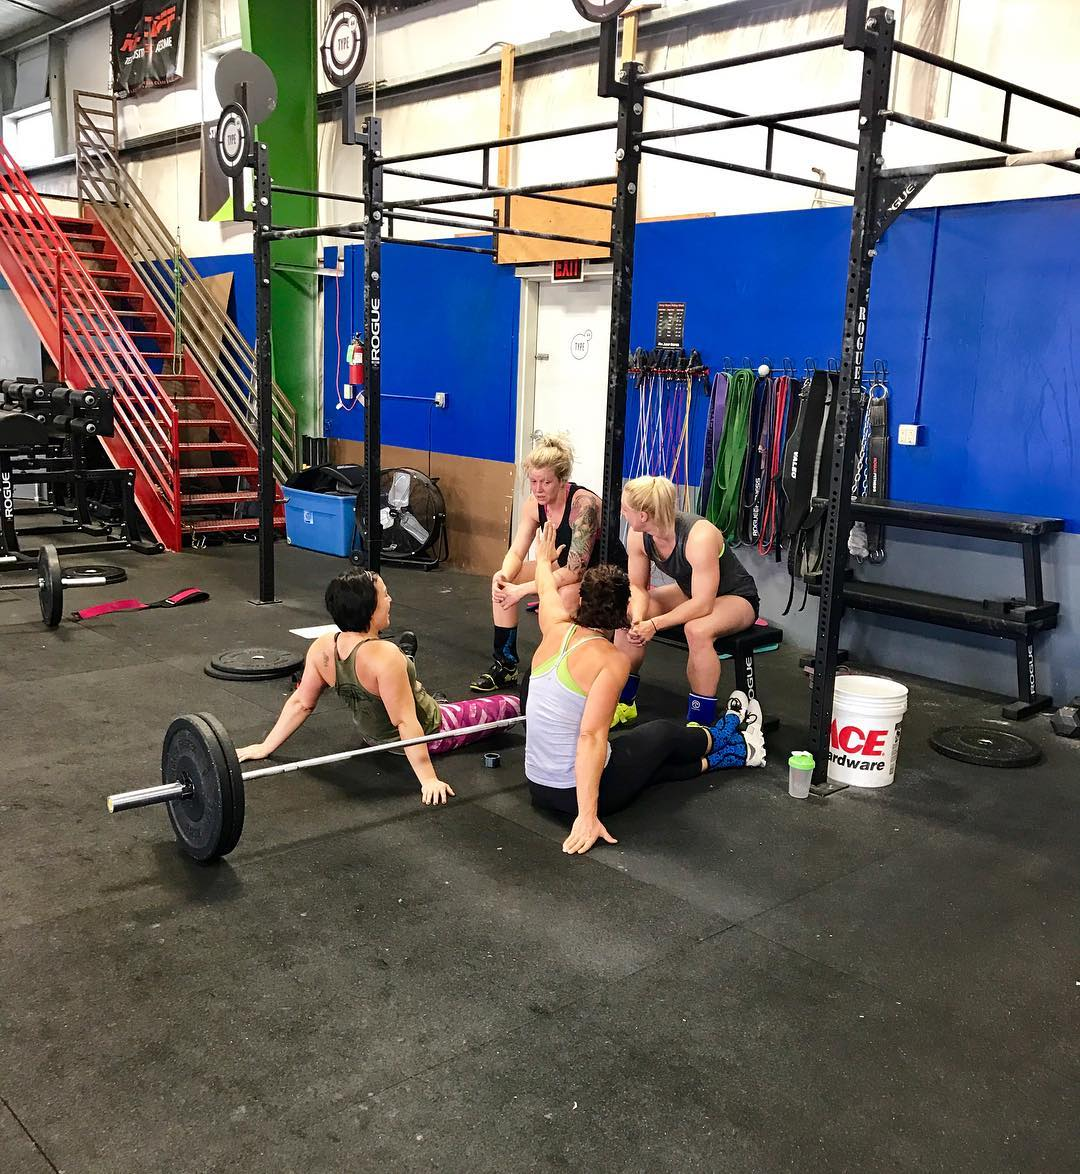 Post WOD feels 💥 That's a wrap! @everydayw4rrior • • • • • #everydaywarrior #crossfit #type44 #centraloregon #bend #inbend #type44strong #boomshockalaka